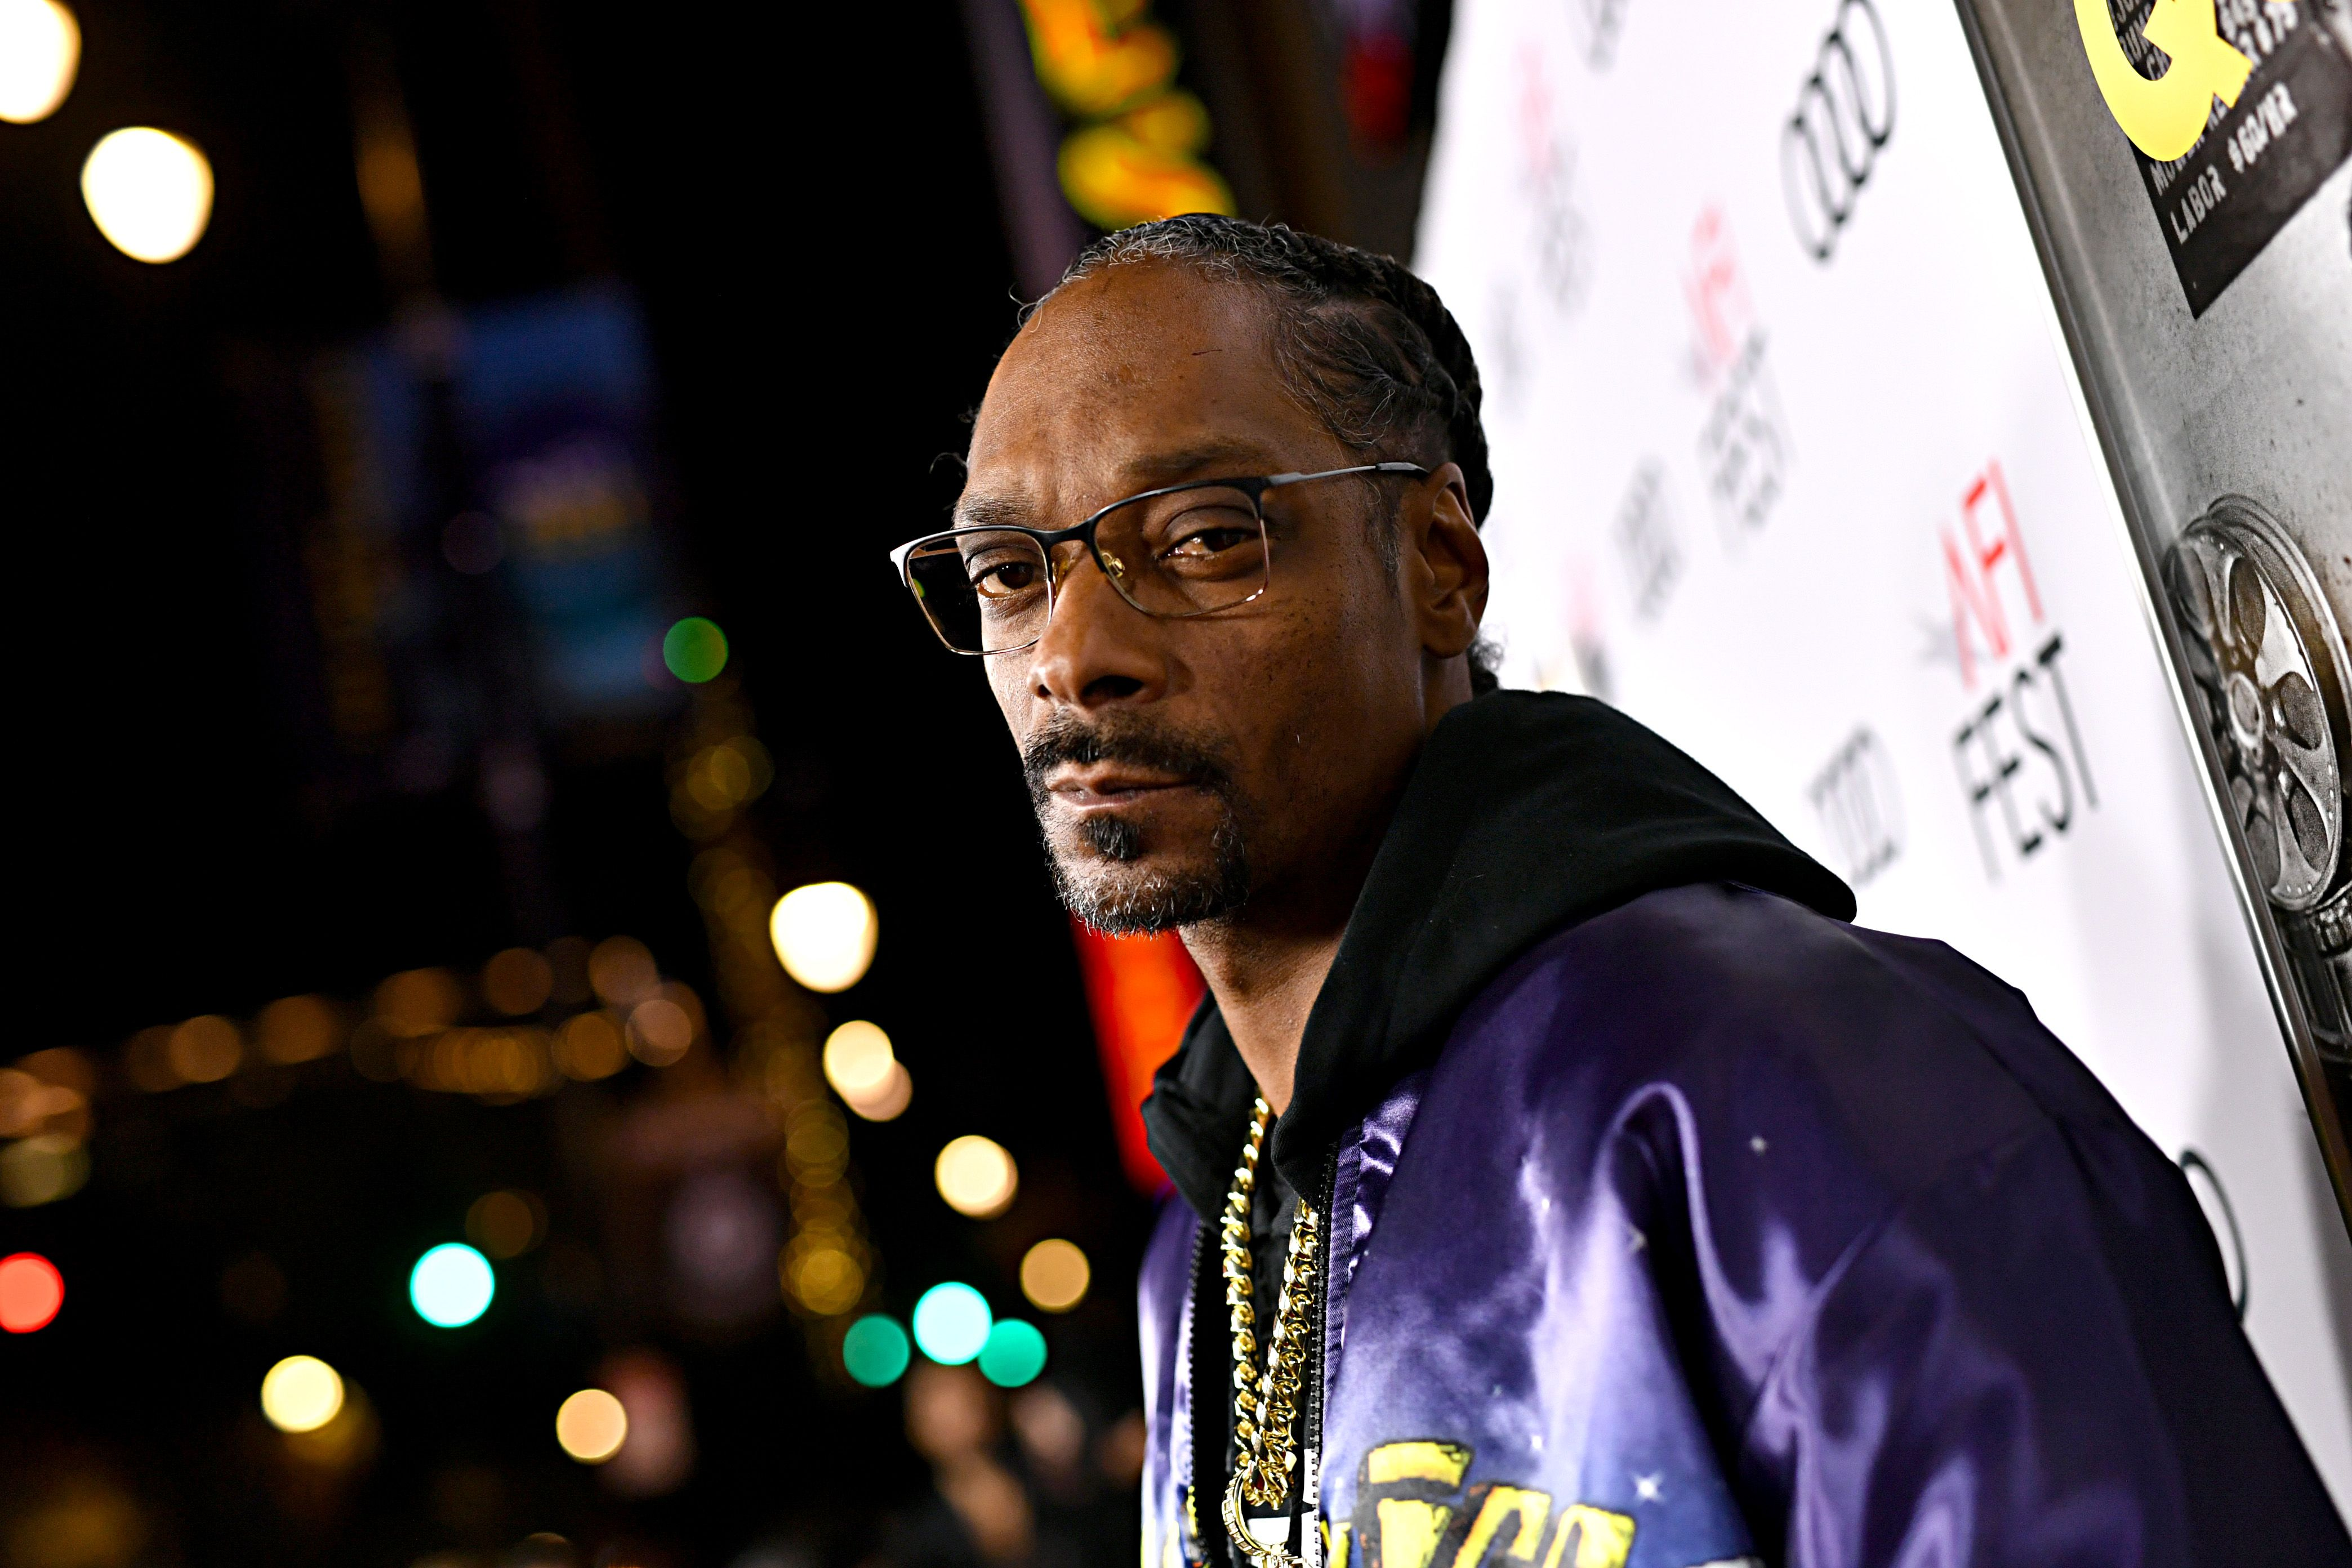 Snoop Dogg posing for the camera.